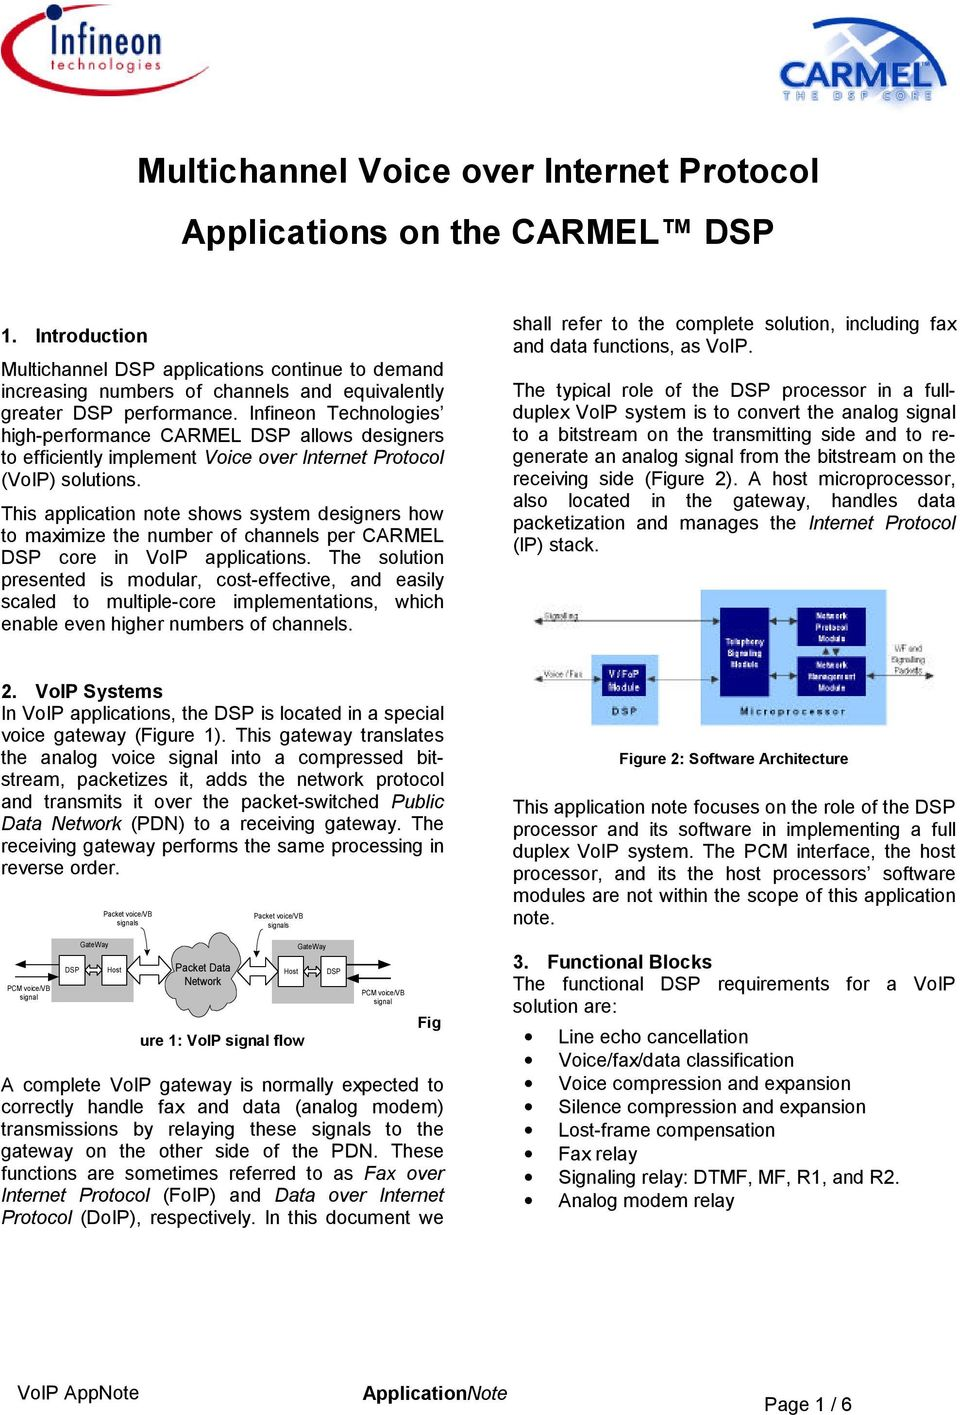 to maximize the number of channels per CARMEL DSP core in VoIP applications The solution presented is modular, cost-effective, and easily scaled to multiple-core implementations, which enable even